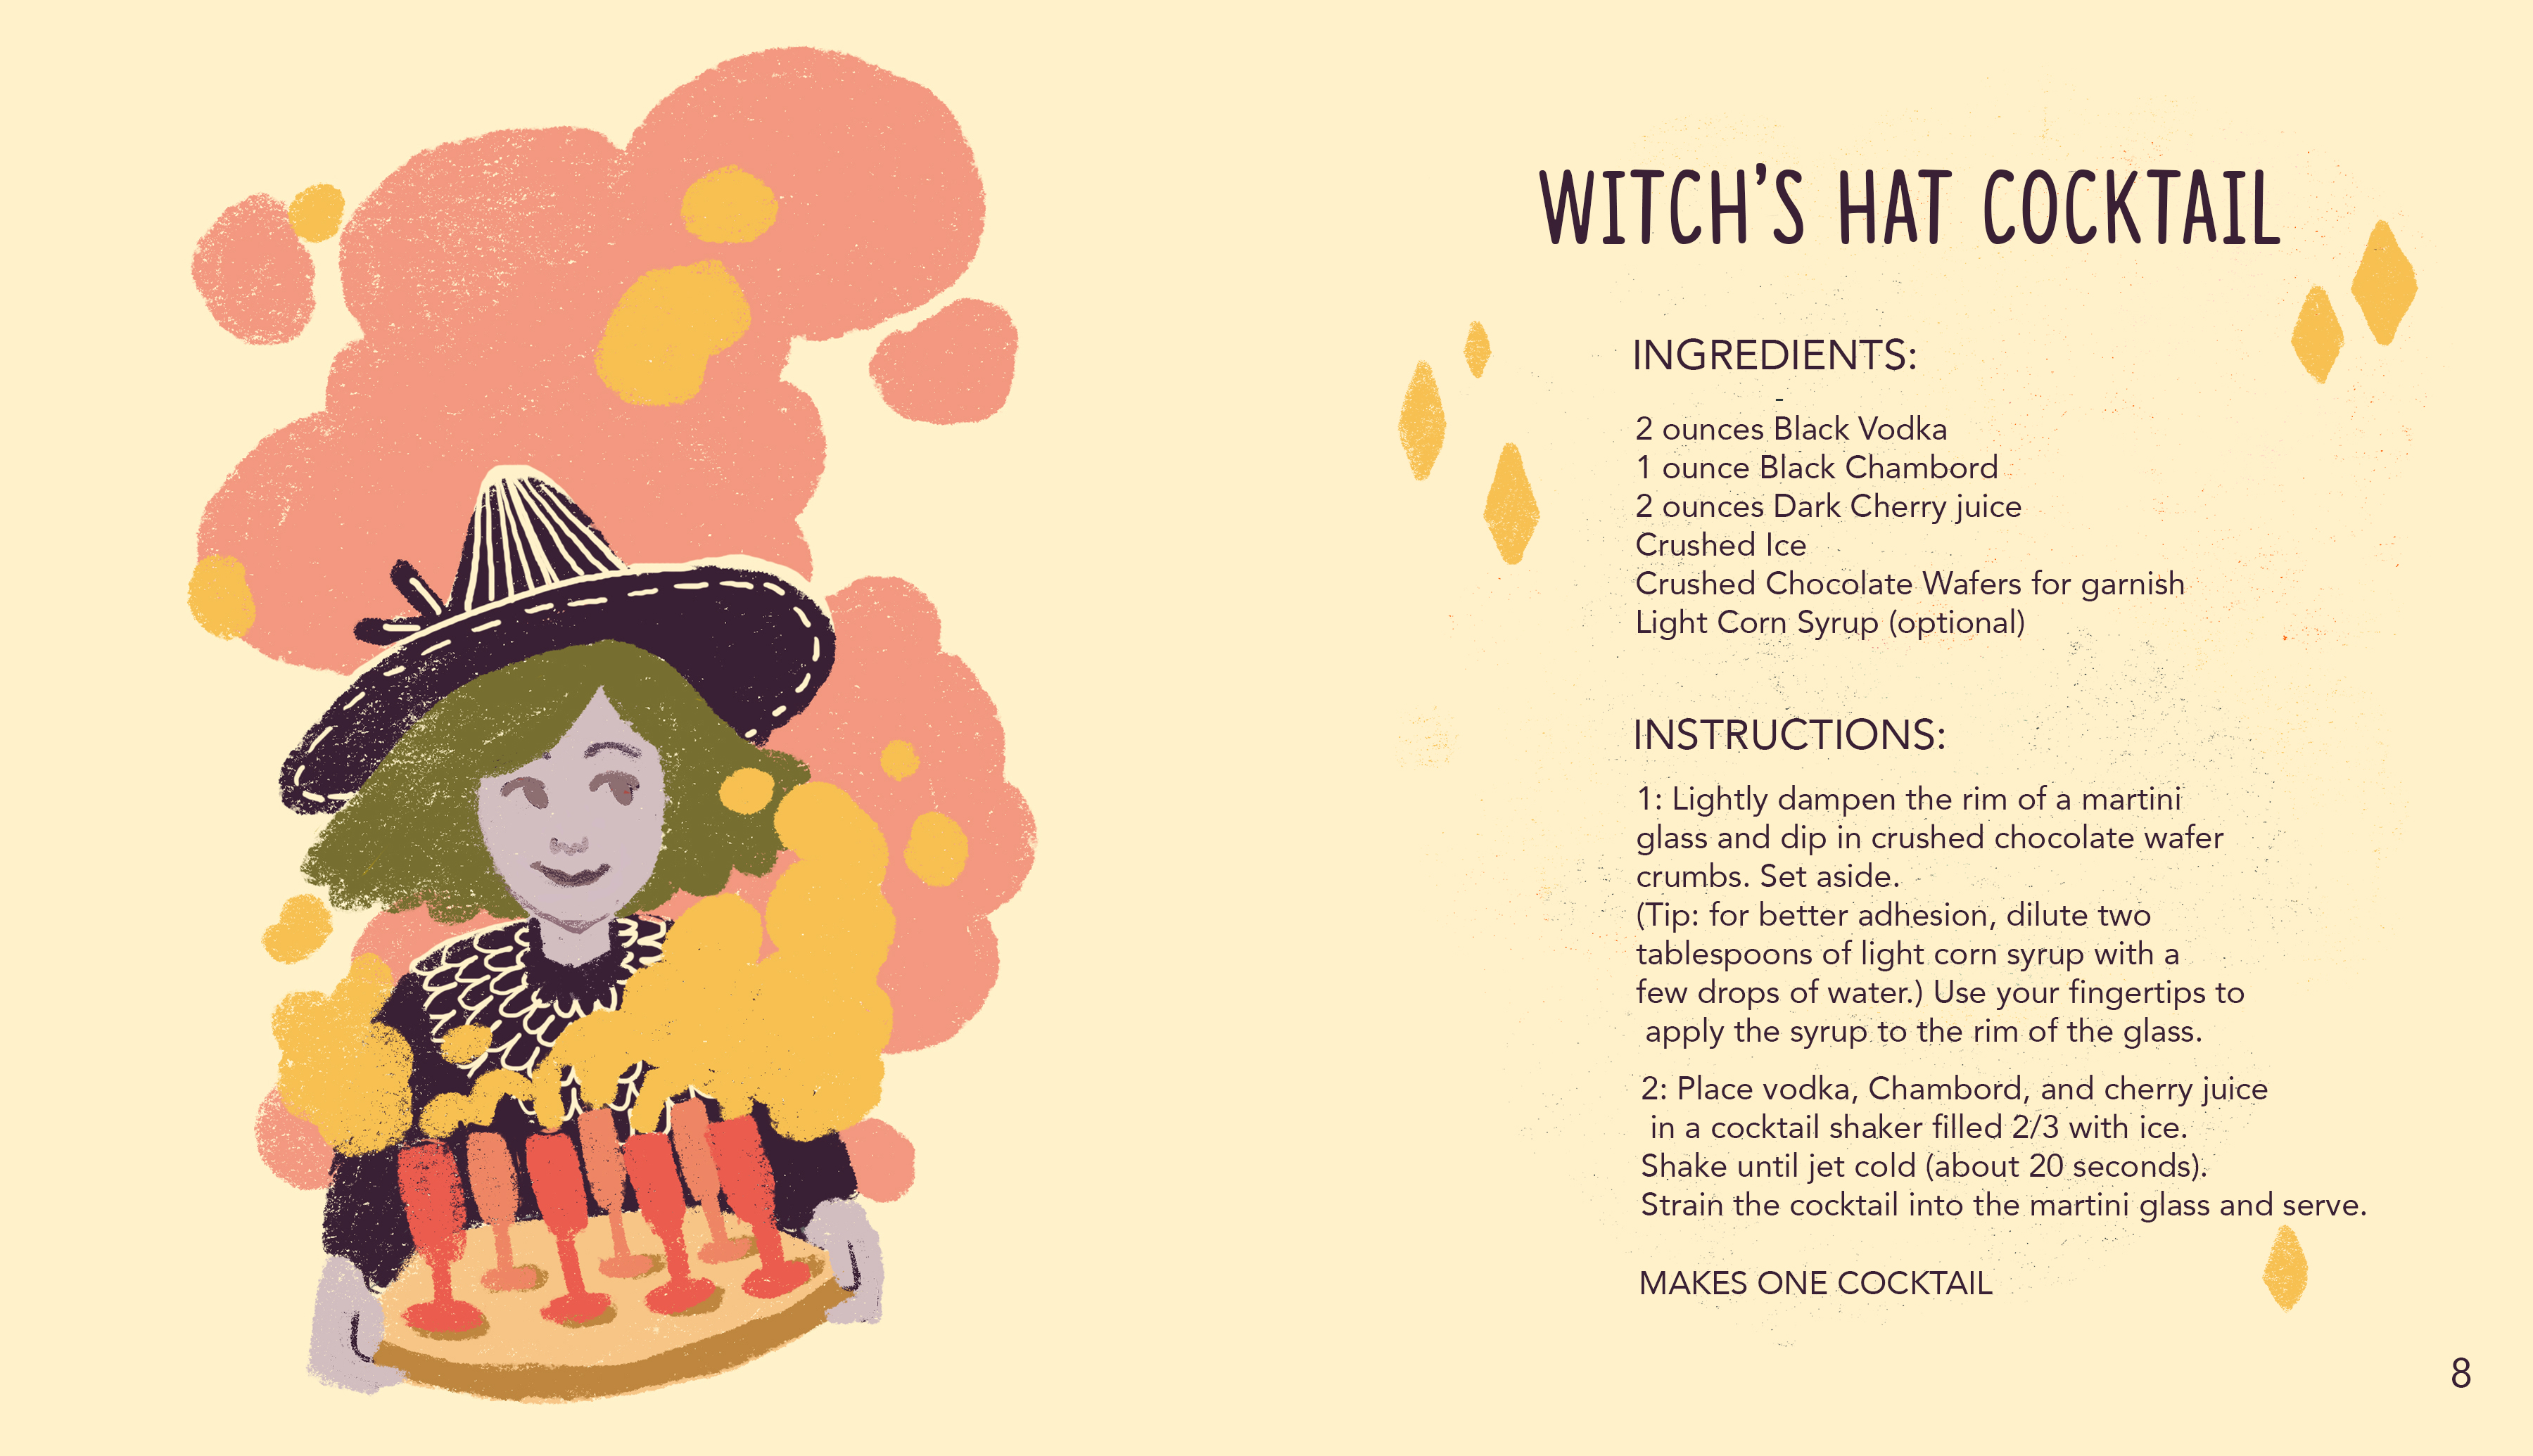 Witch's Hat Cocktail 2